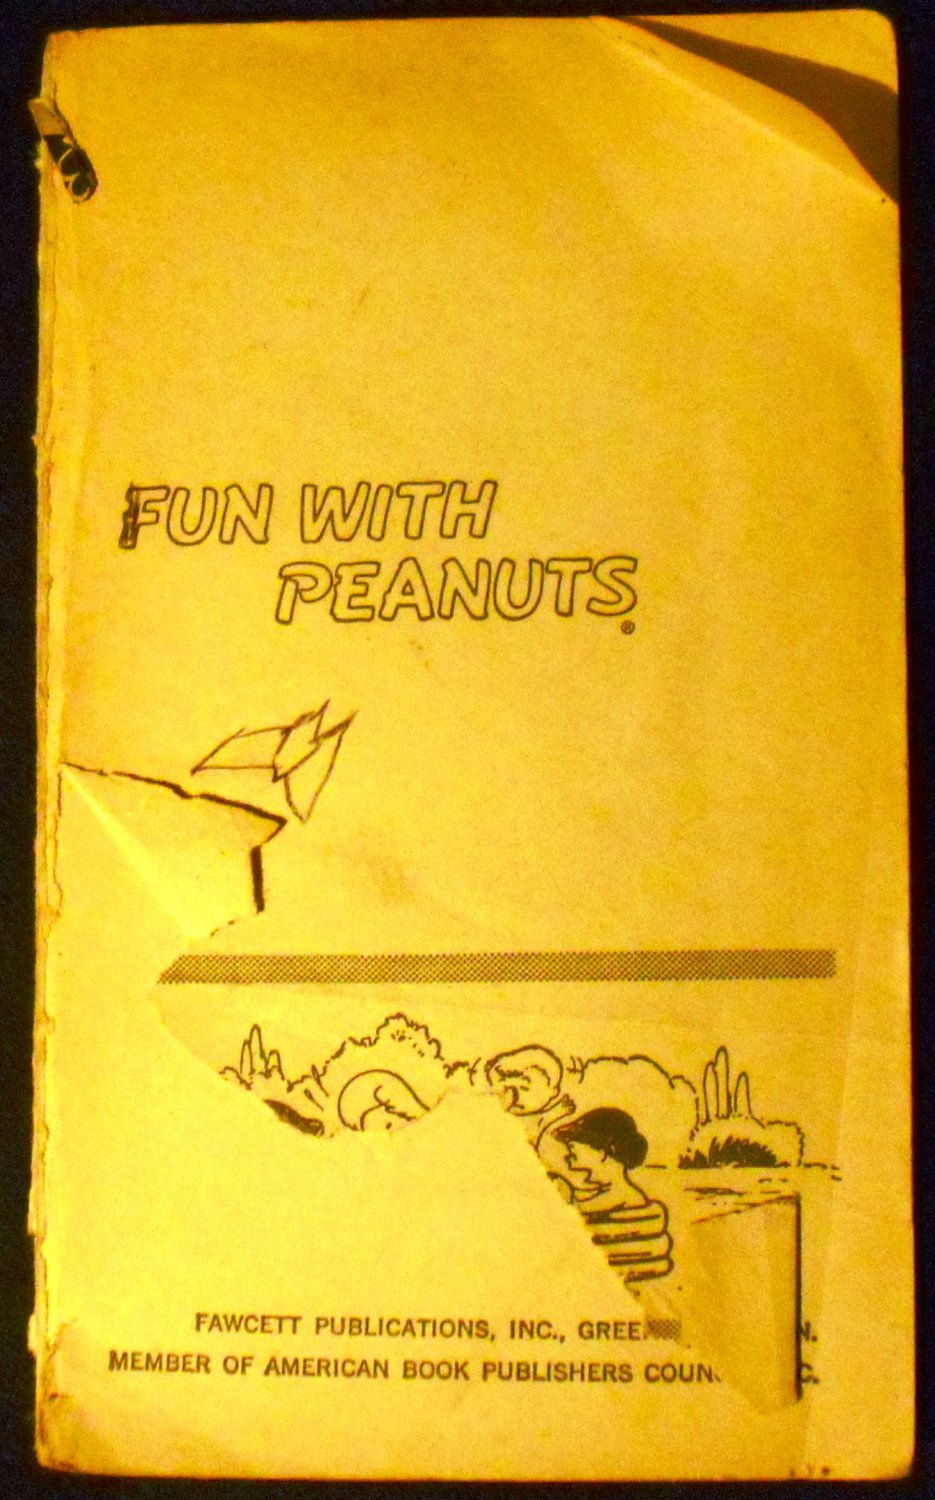 Fun with Peanuts (Paperback) by Charles M. Schulz (Author)  (1970)